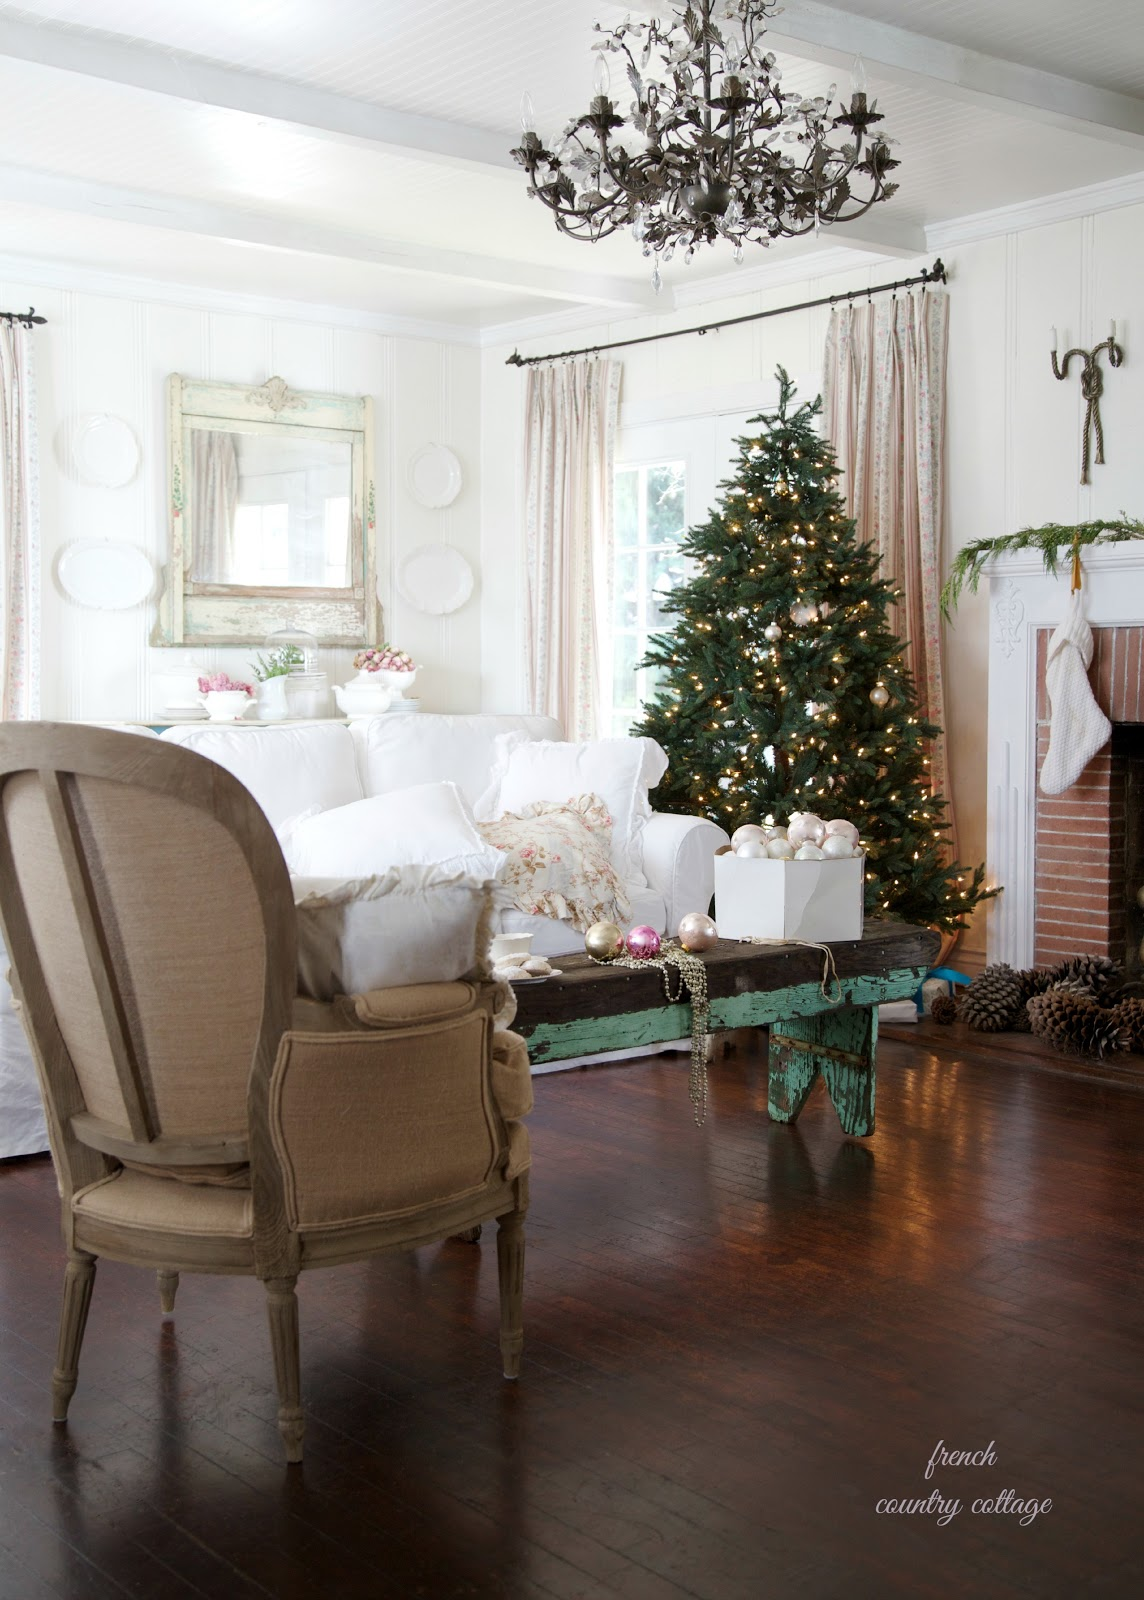 French country cottage christmas home tour french for French country cottage design